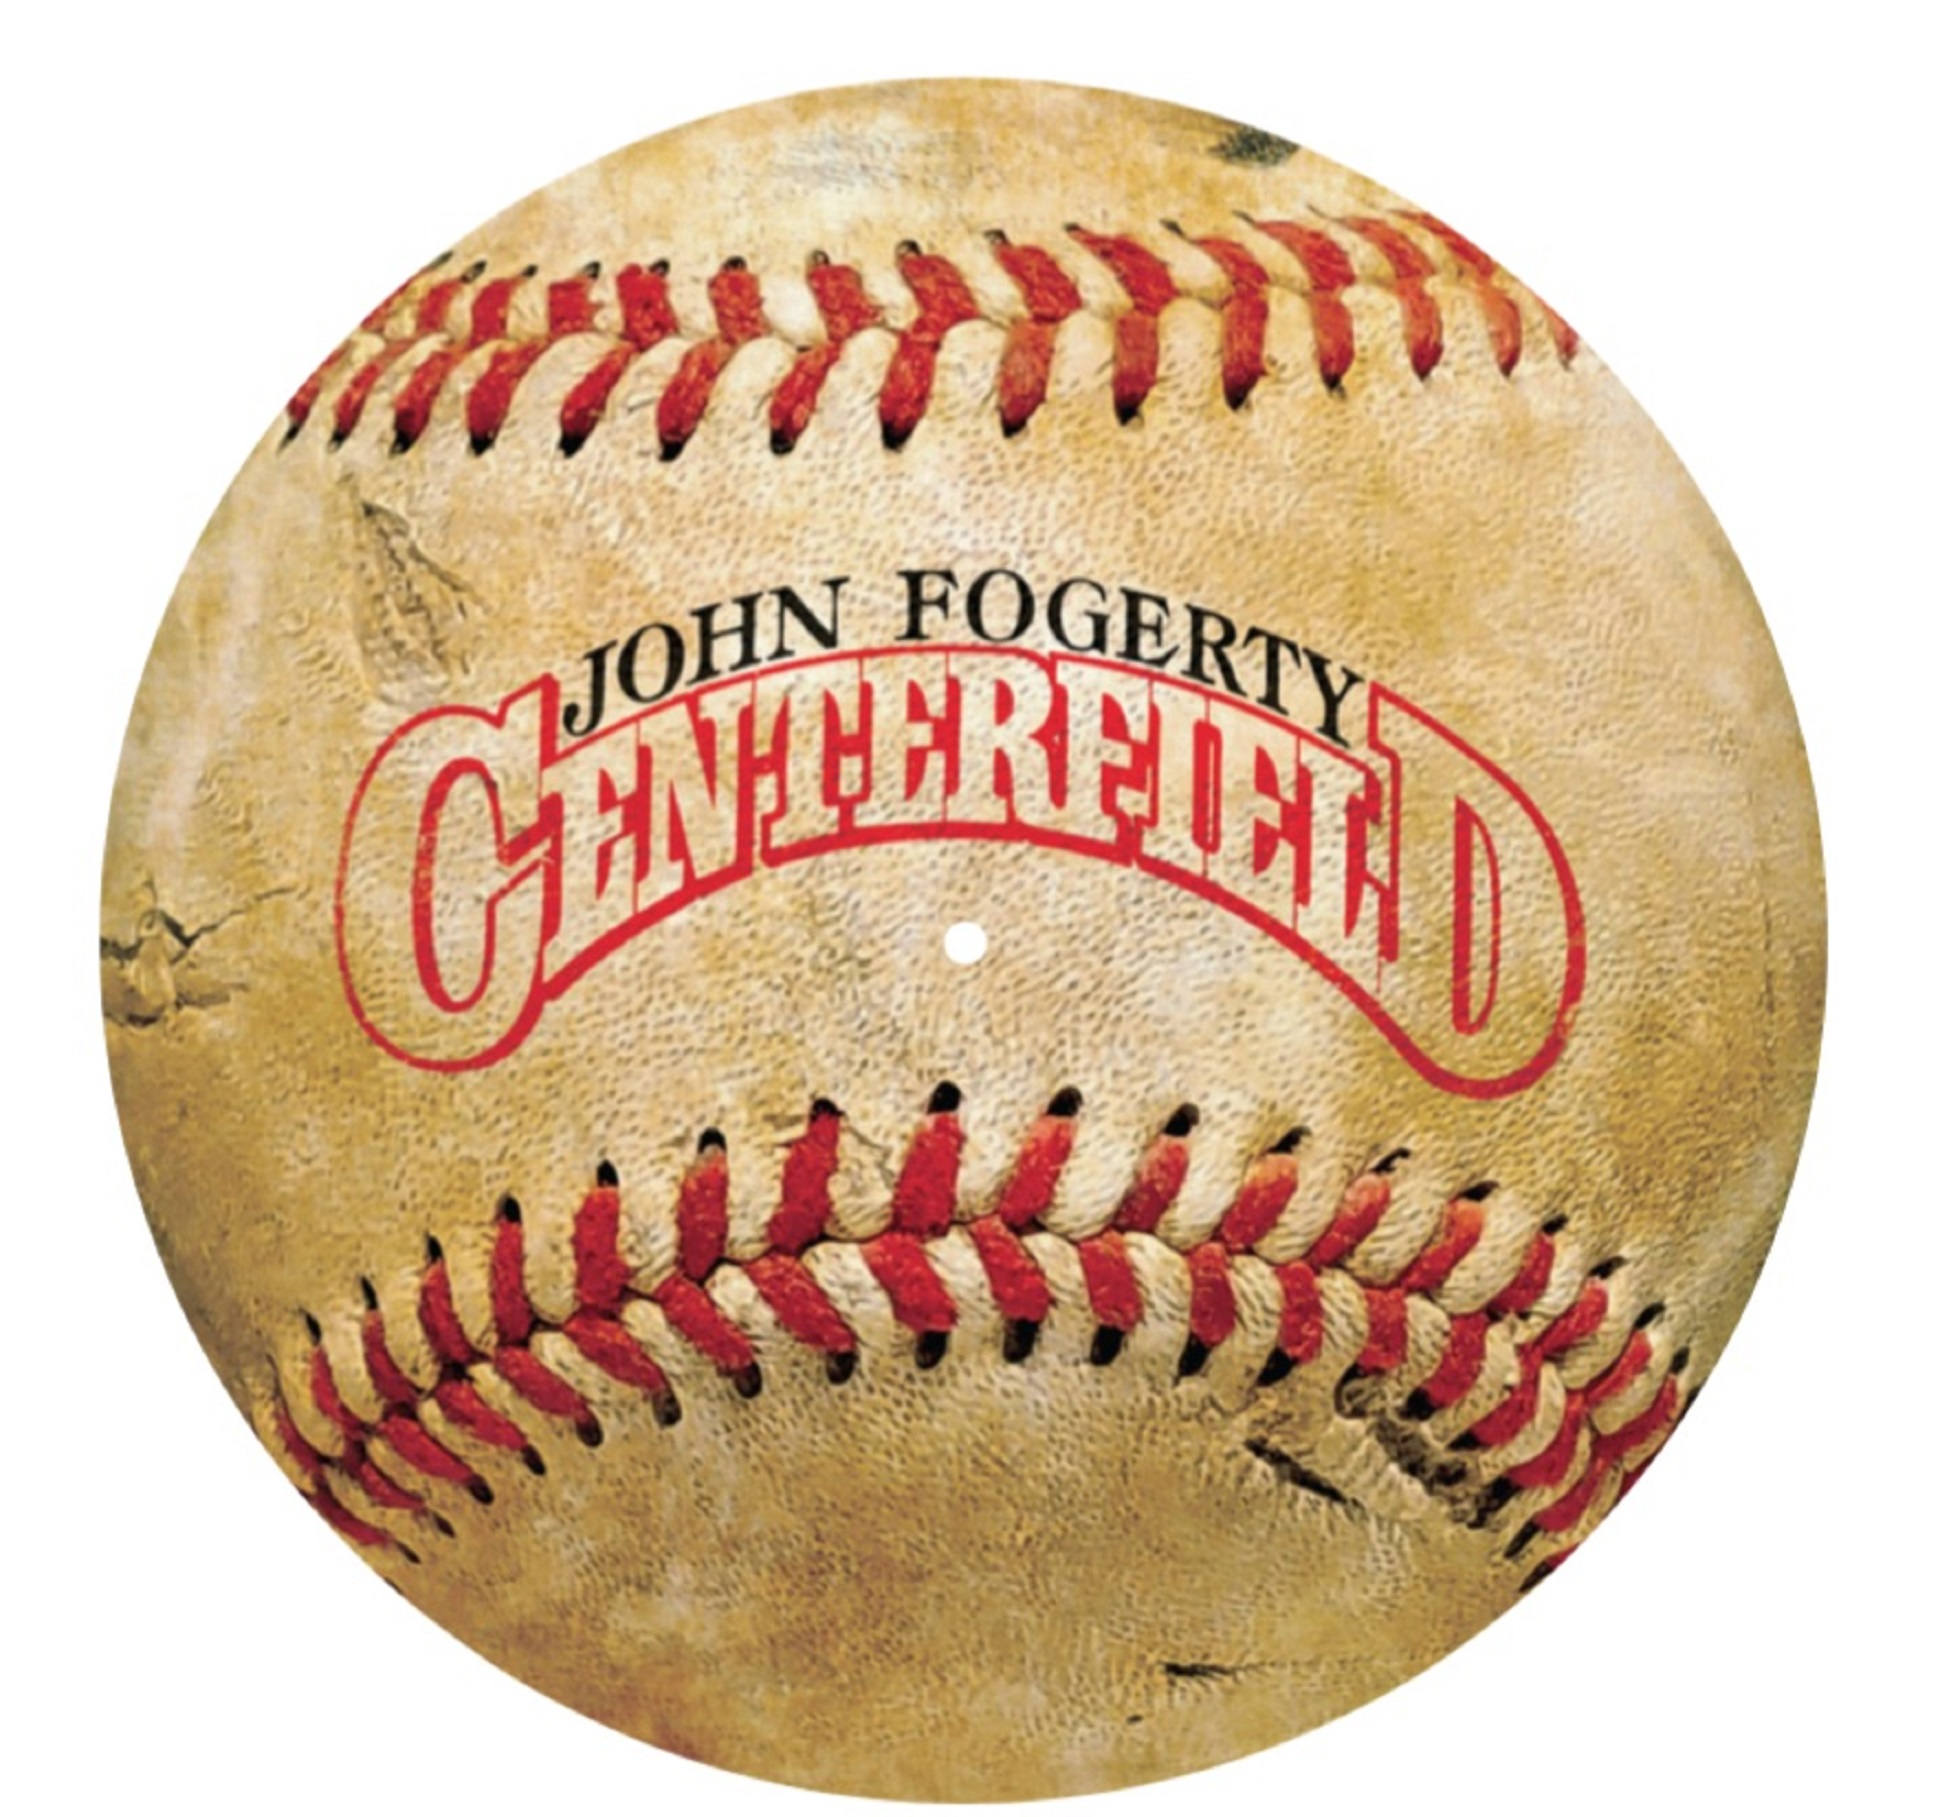 "John Fogerty's ""Centerfield"" to be reissued on April 6th"